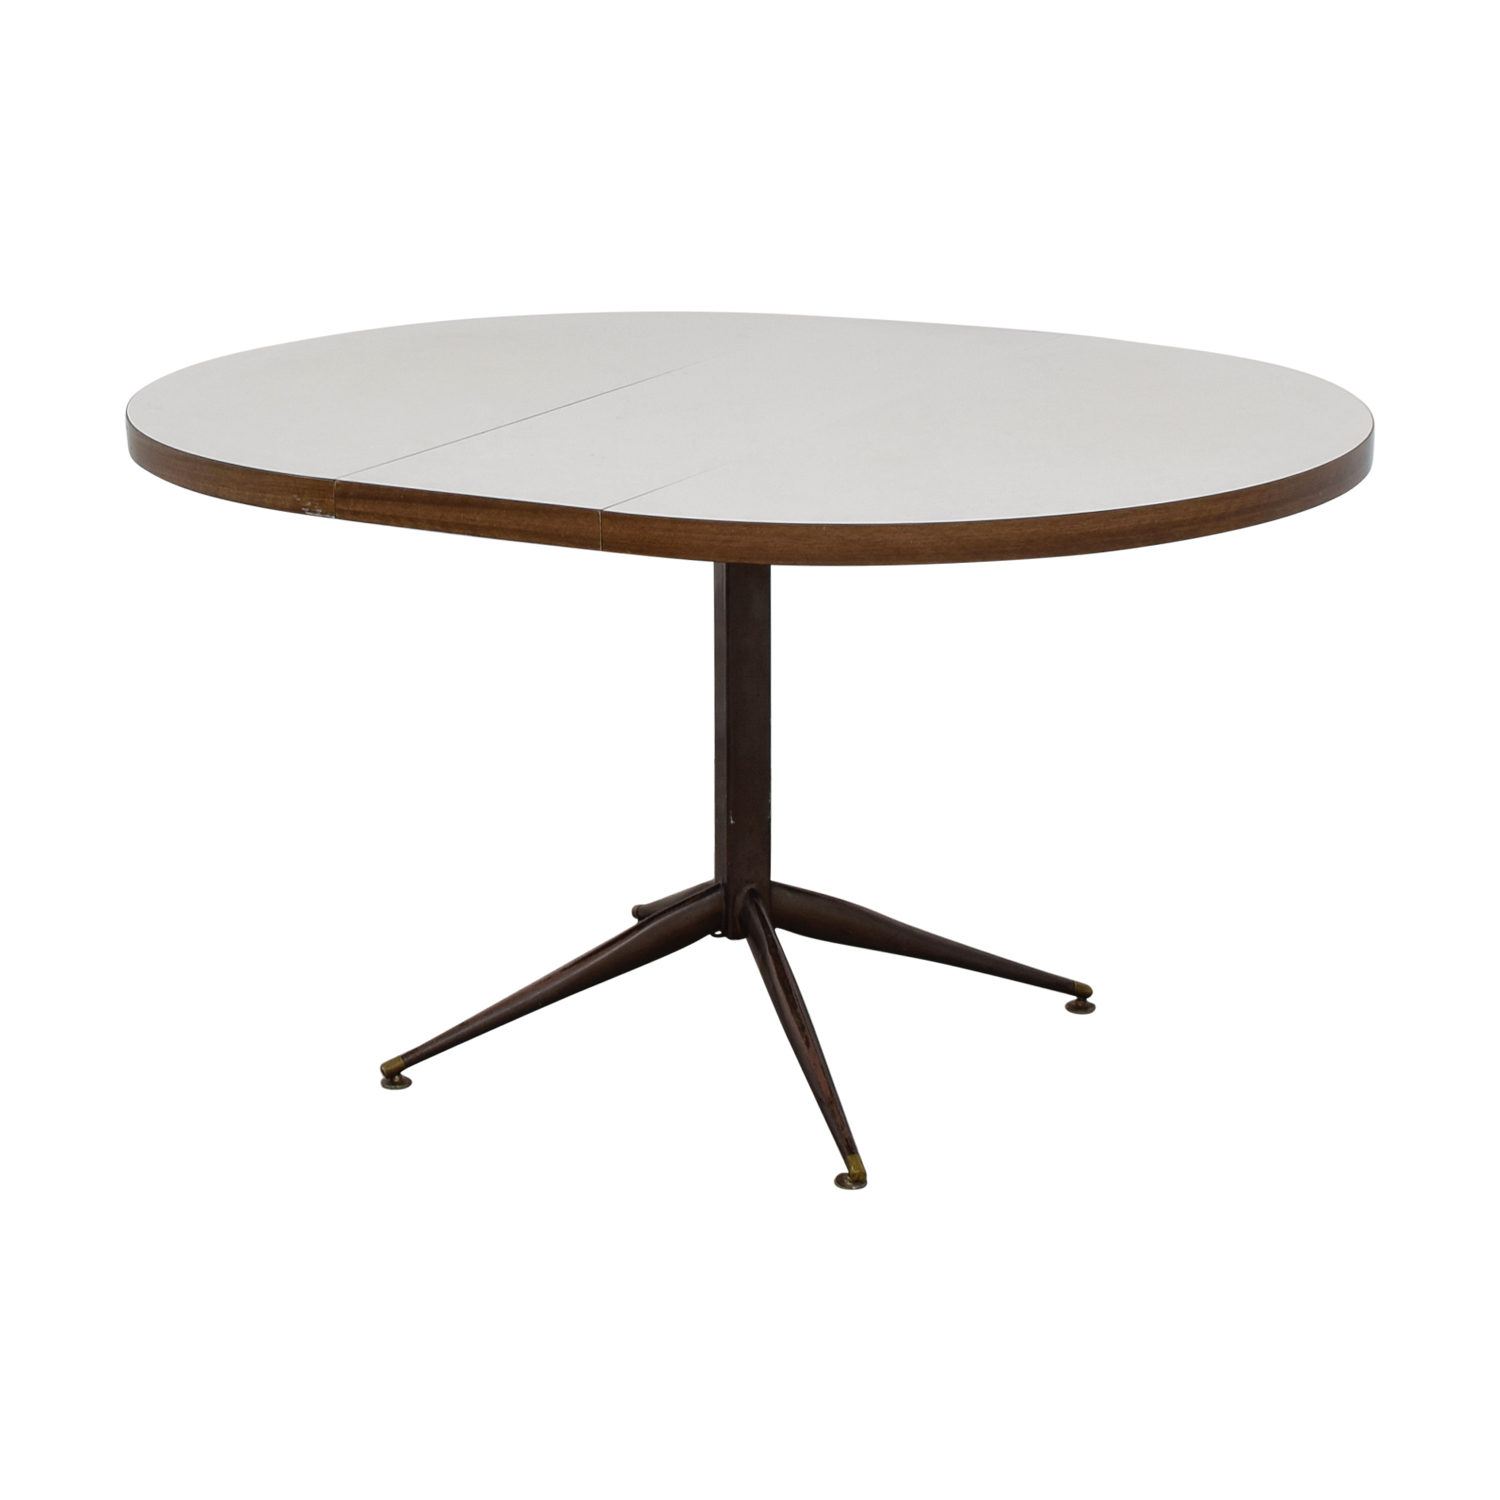 63 off white round expandable table tables for Buy expanding round table